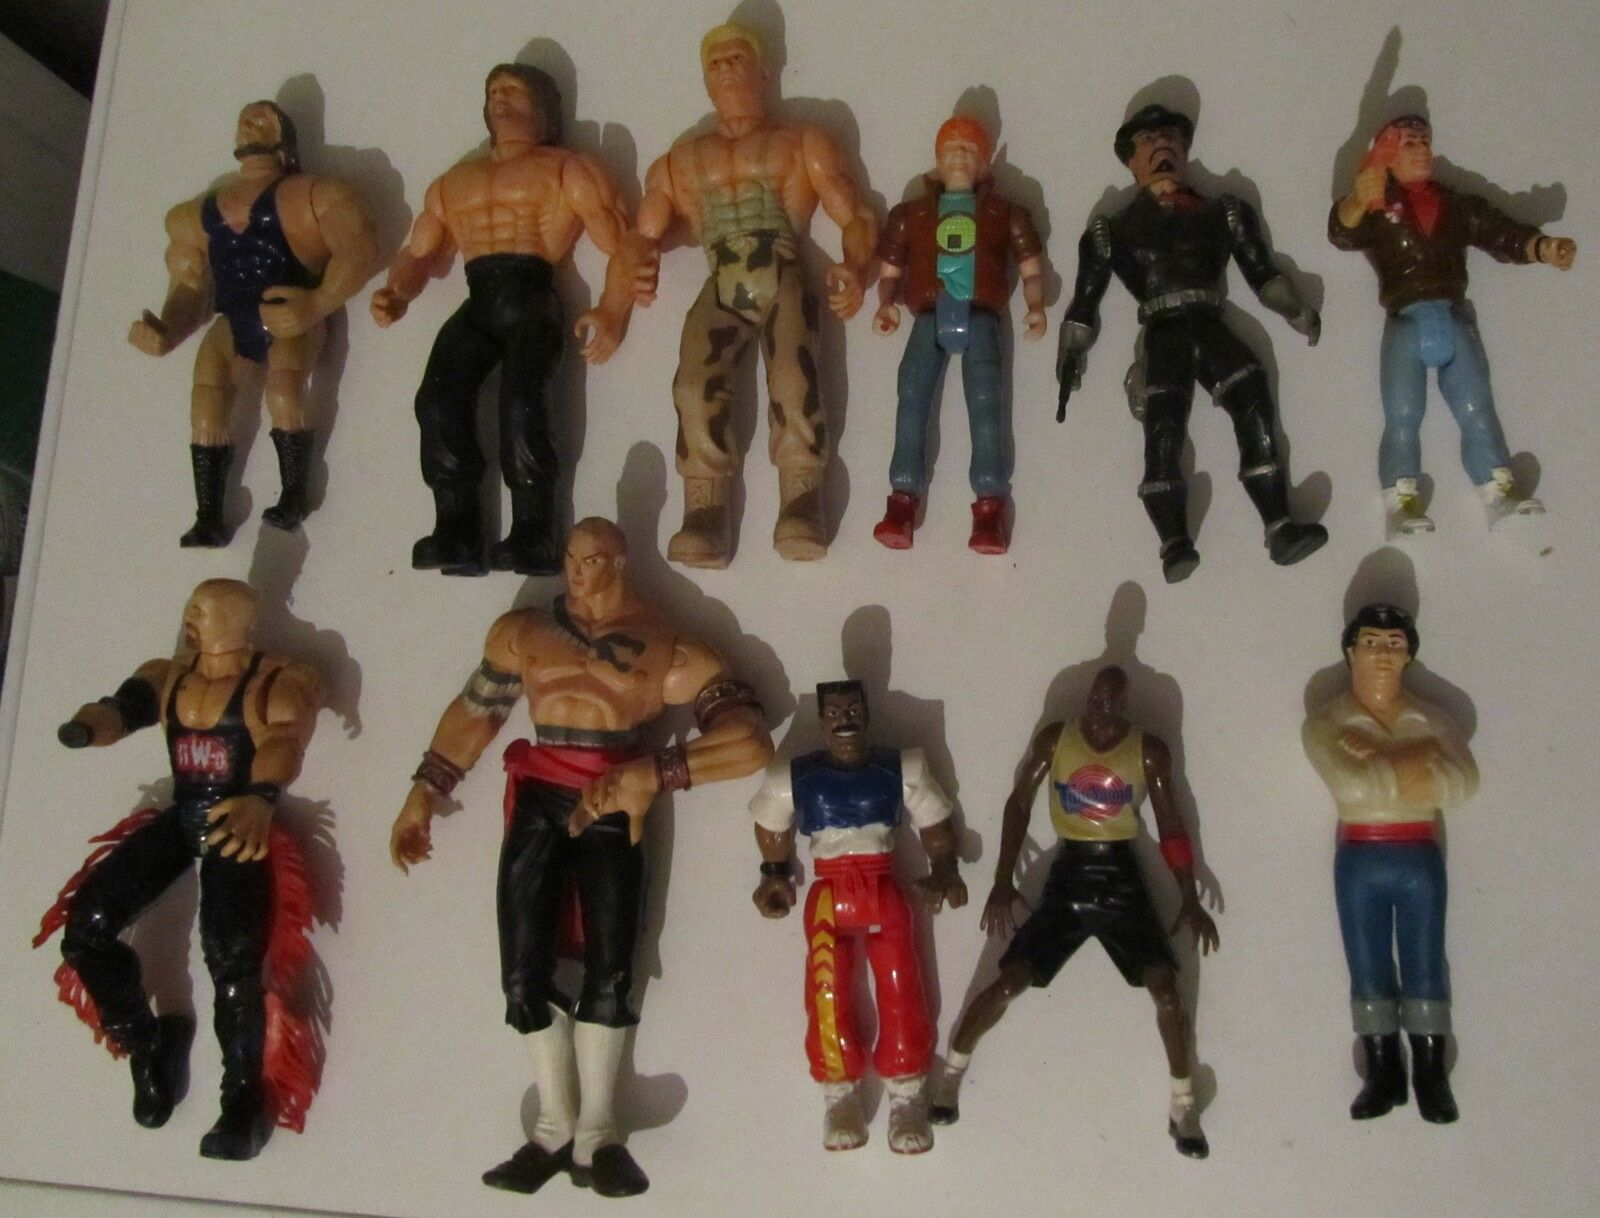 Lotto 11 Wrestler e varie action figuyre Vintage Wrestling wwf james bond junior